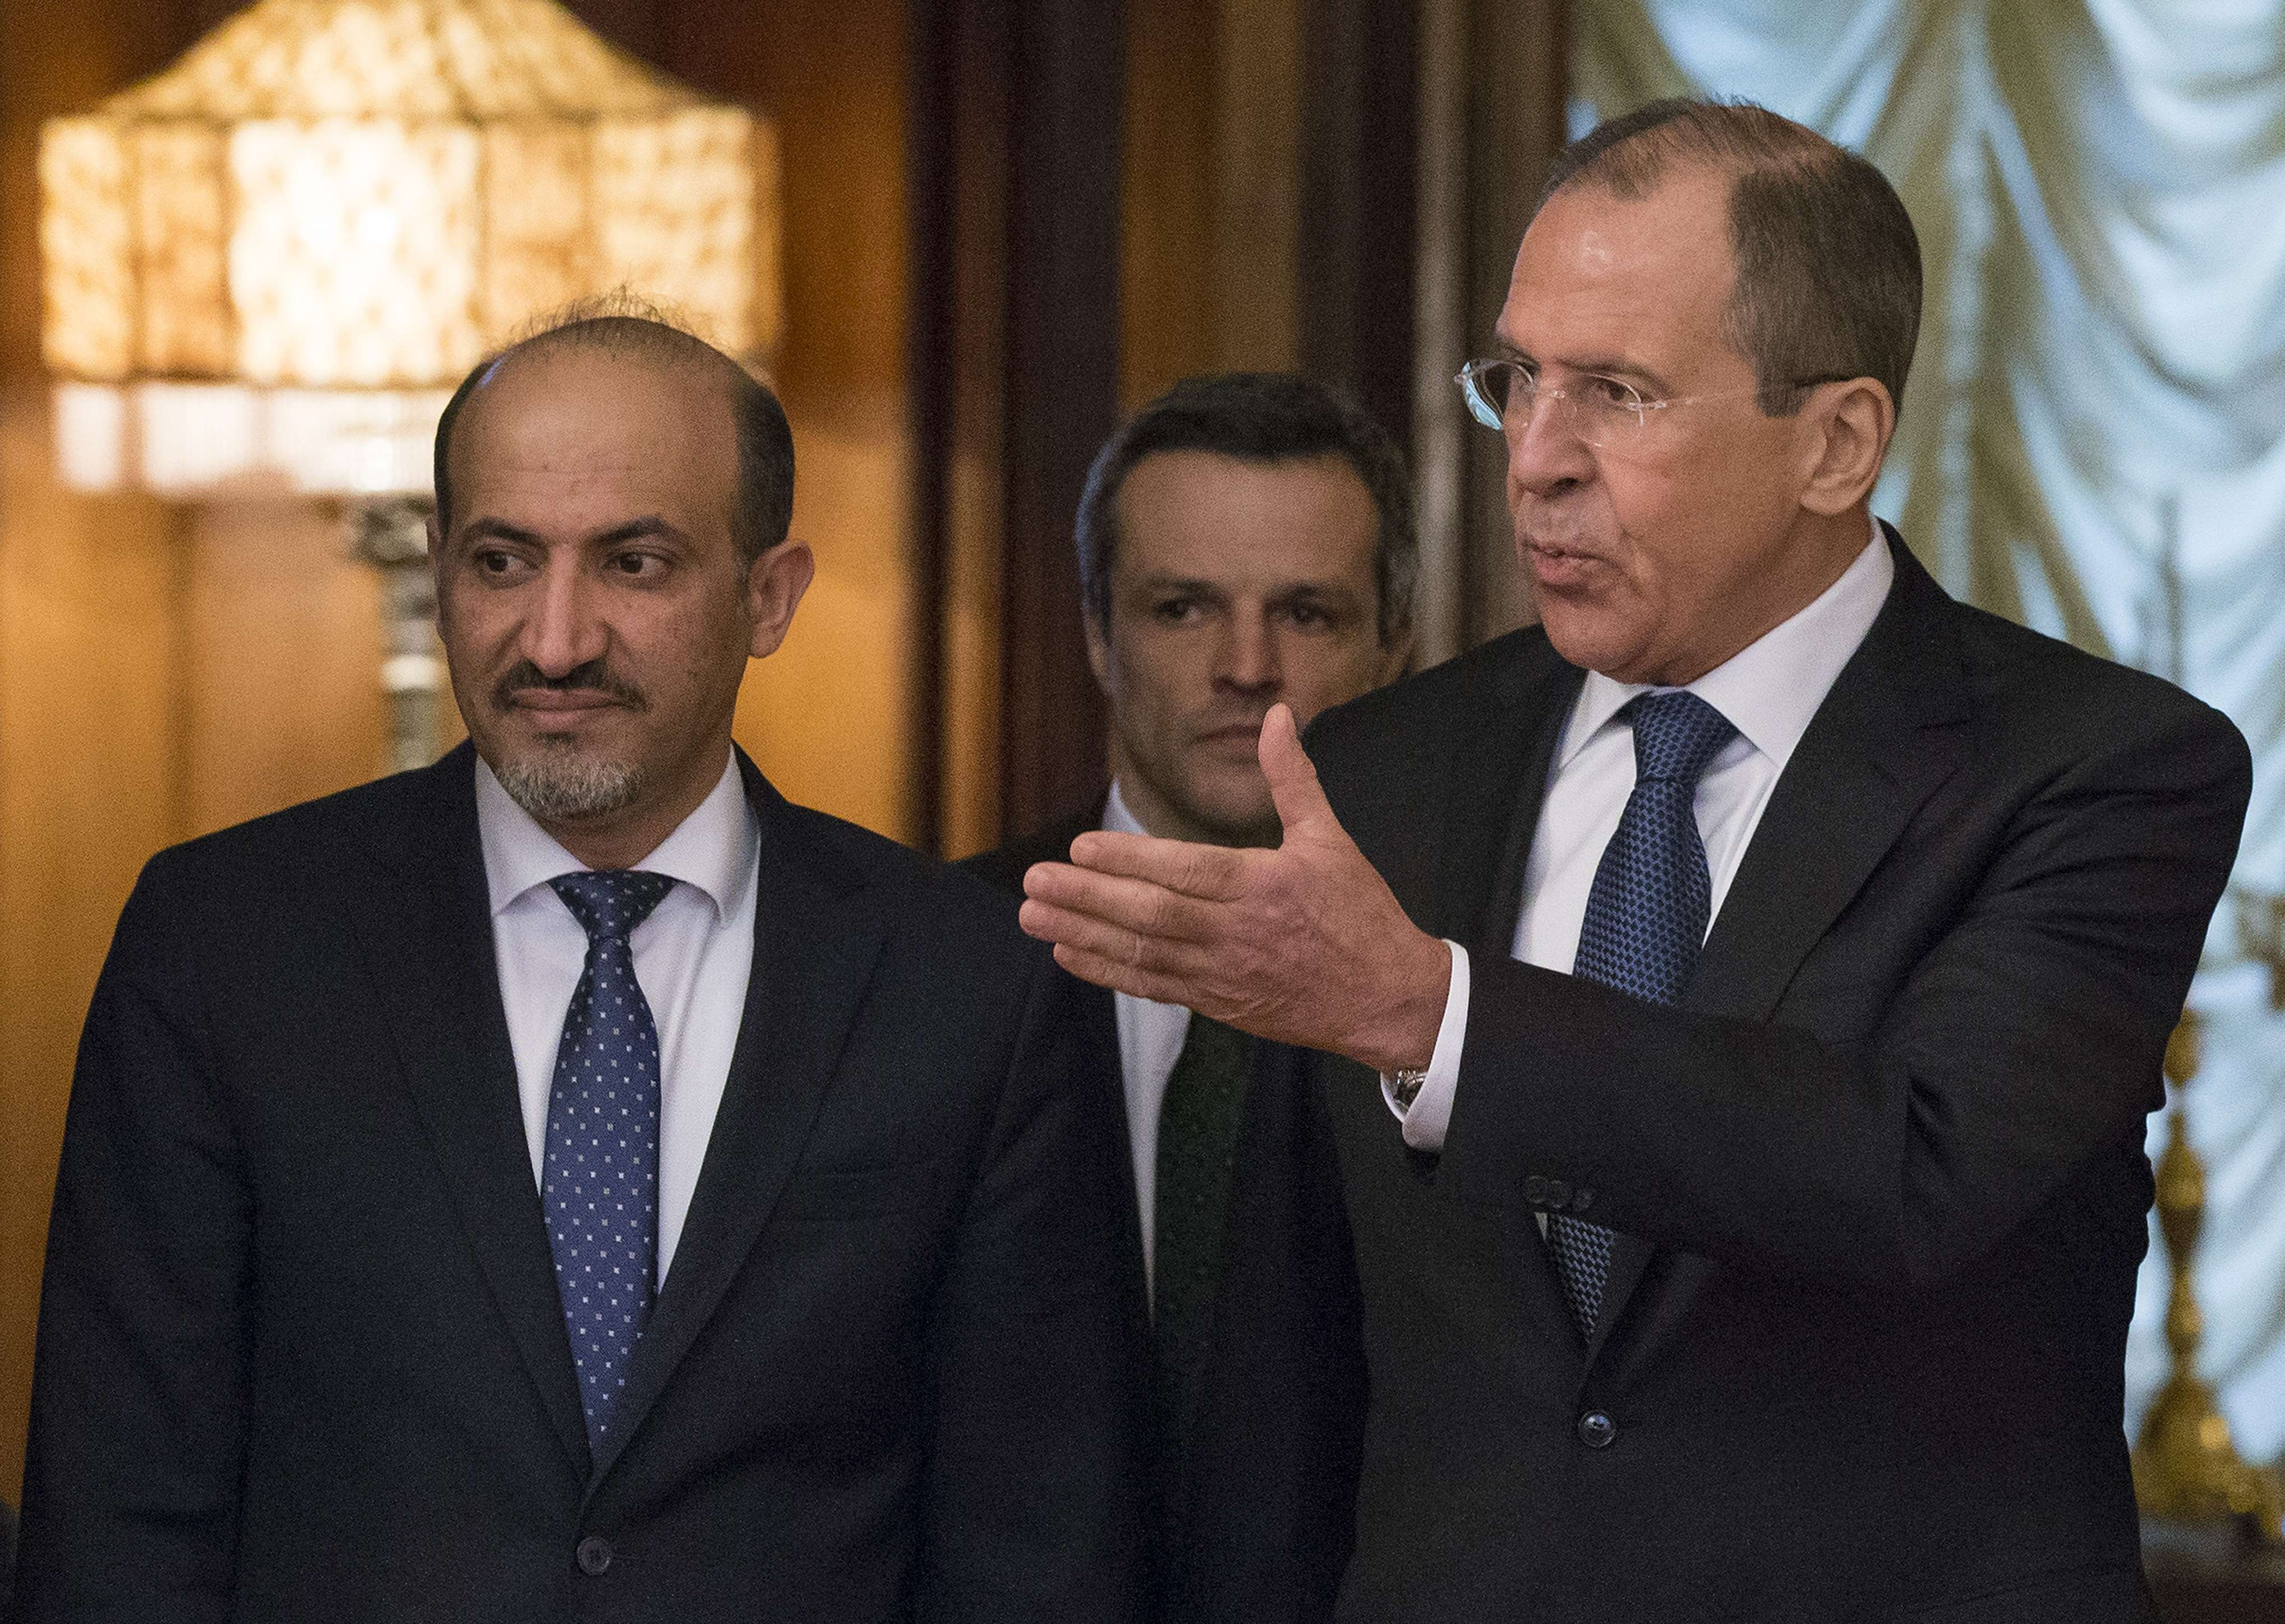 Russia's Foreign Minister Sergei Lavrov (R) and Syrian opposition leader Ahmad Jarba meet in Moscow February 4, 2014. Syria's opposition leader met today Russia's top diplomat in a bid to persuade Moscow to push its ally Damascus to agree to a transitional government for the war-scarred nation.  (AFP PHOTO)